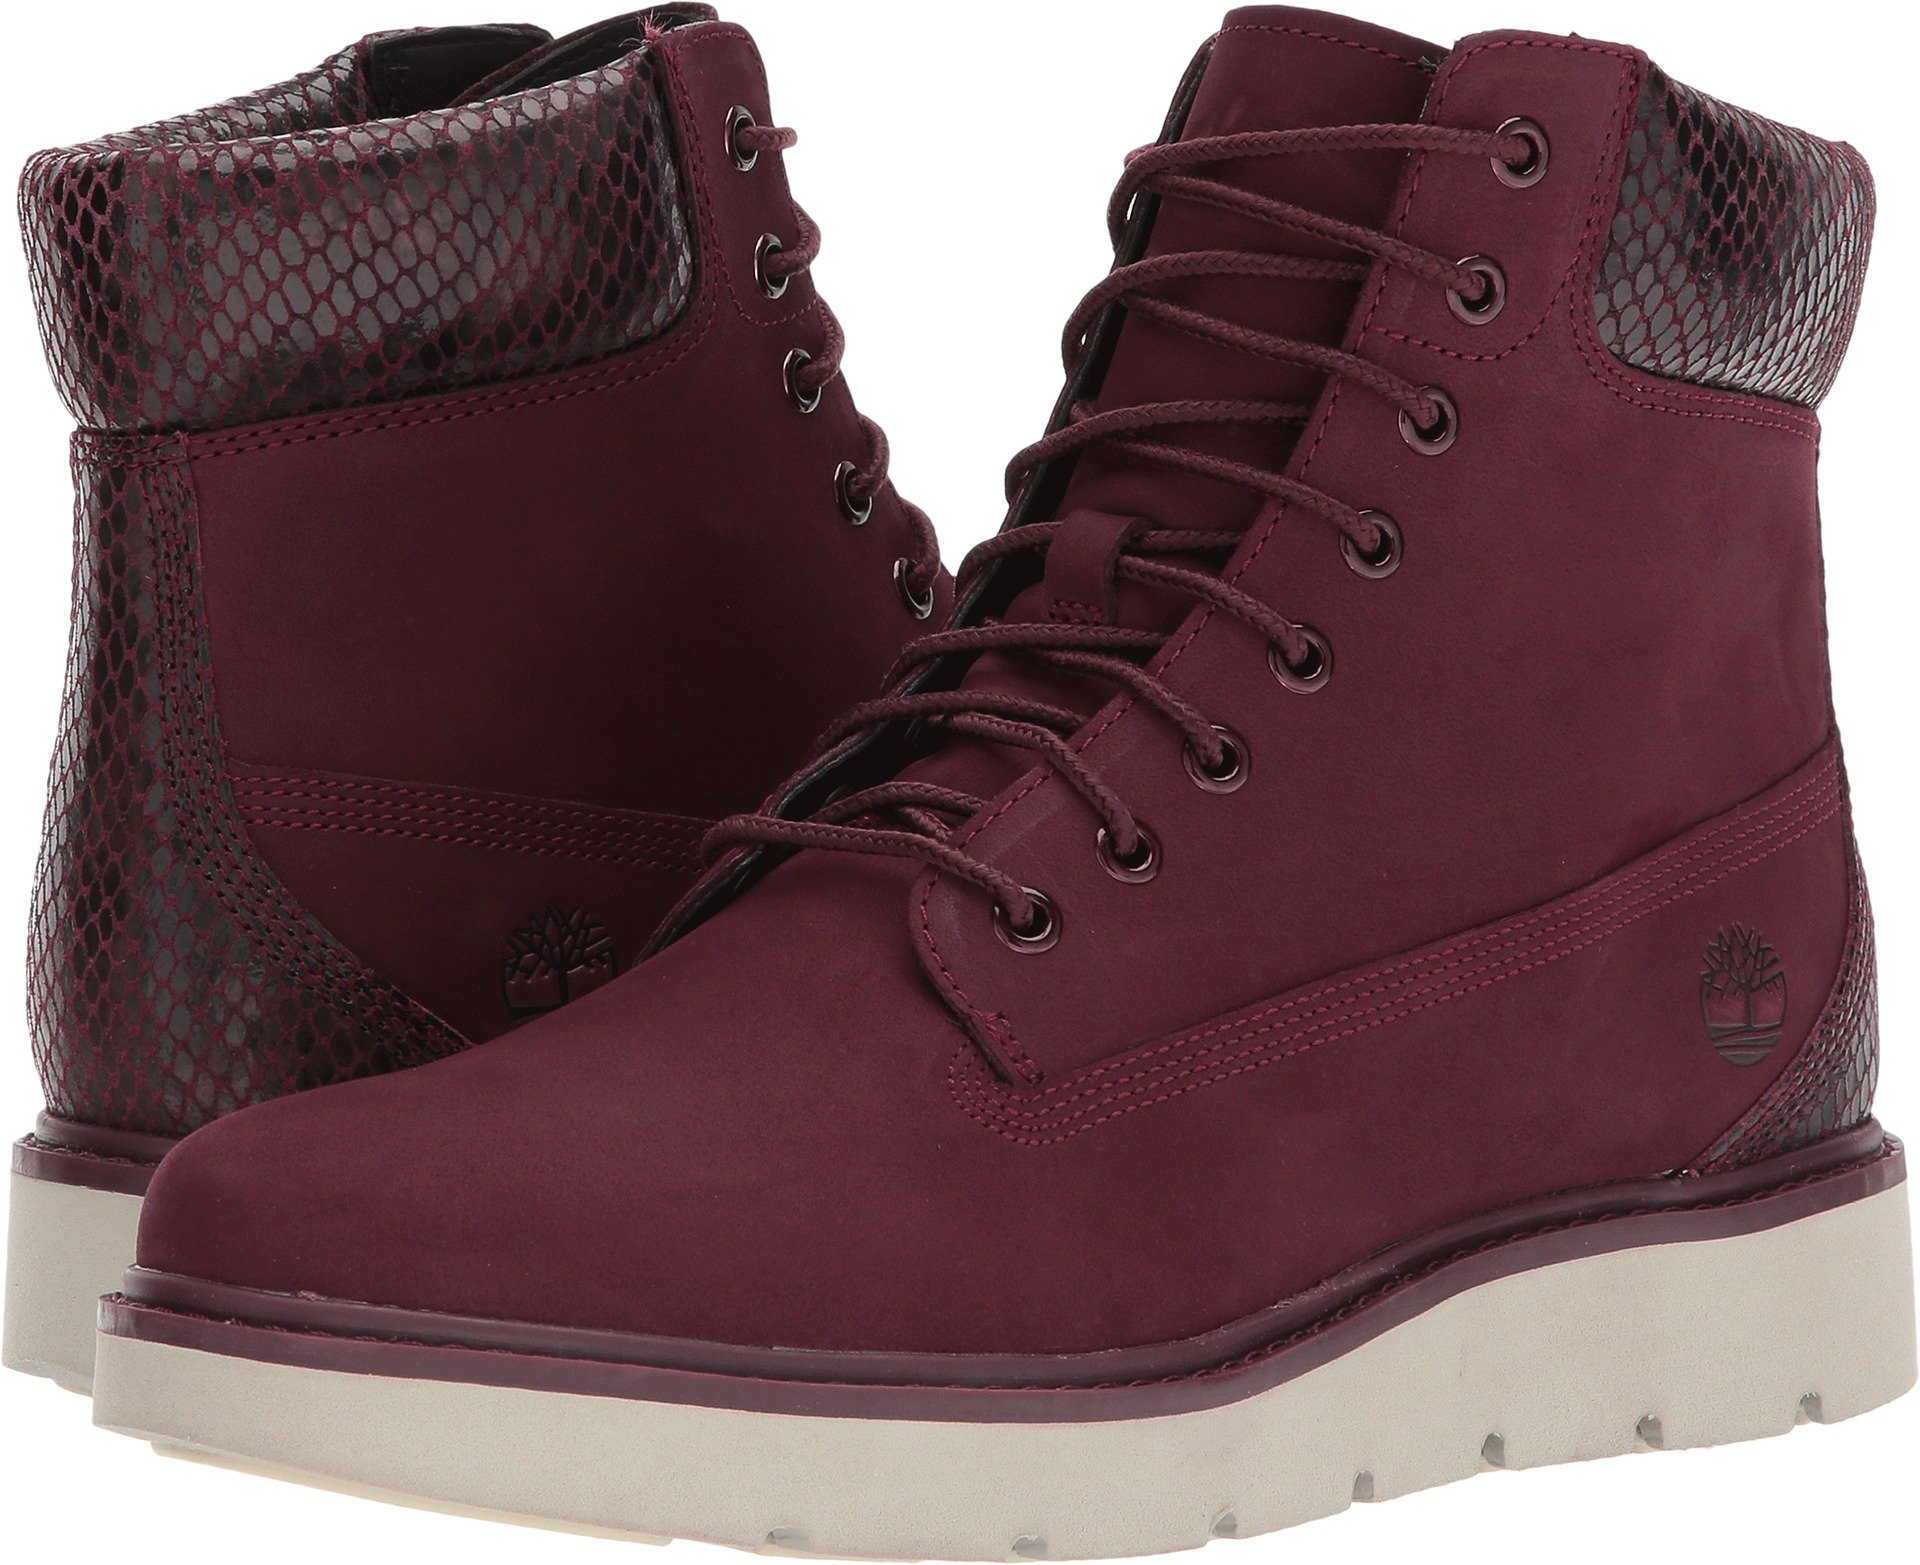 Timberland Womens Kensington 6-Inch Lace-Up Boot Dark Red Nubuck Size 10